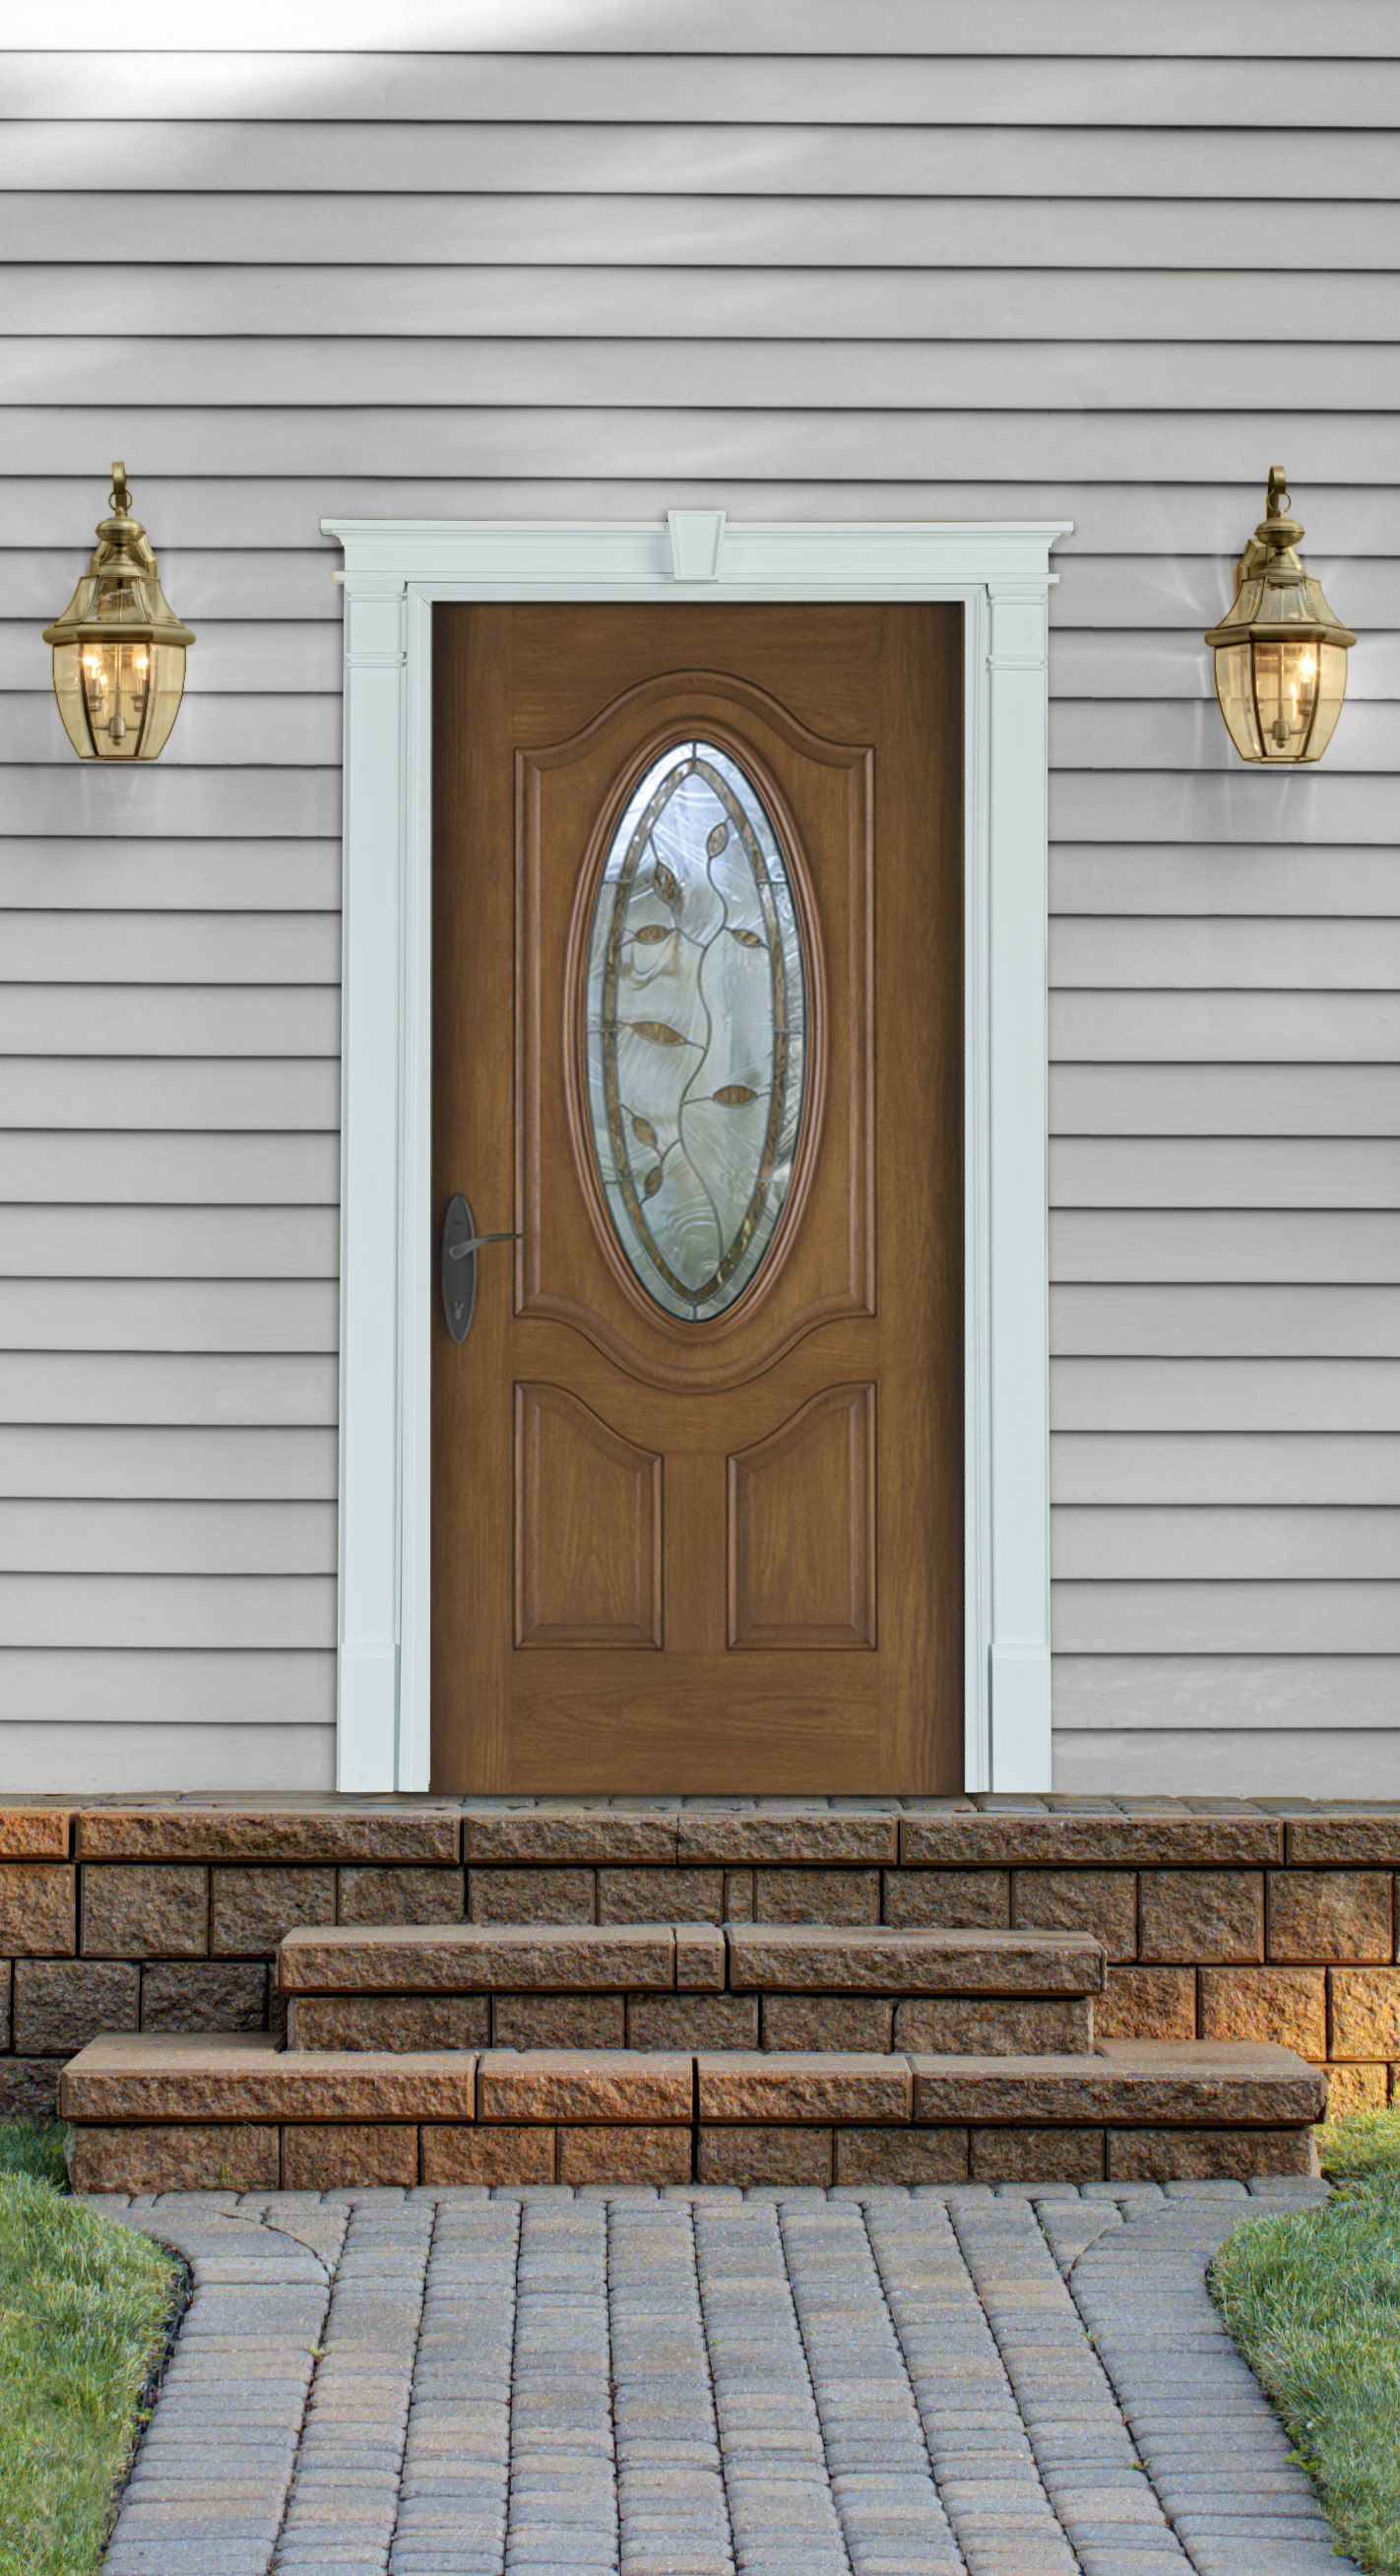 Door Surround Kit From Fypon Adds Curb Appeal To The Home